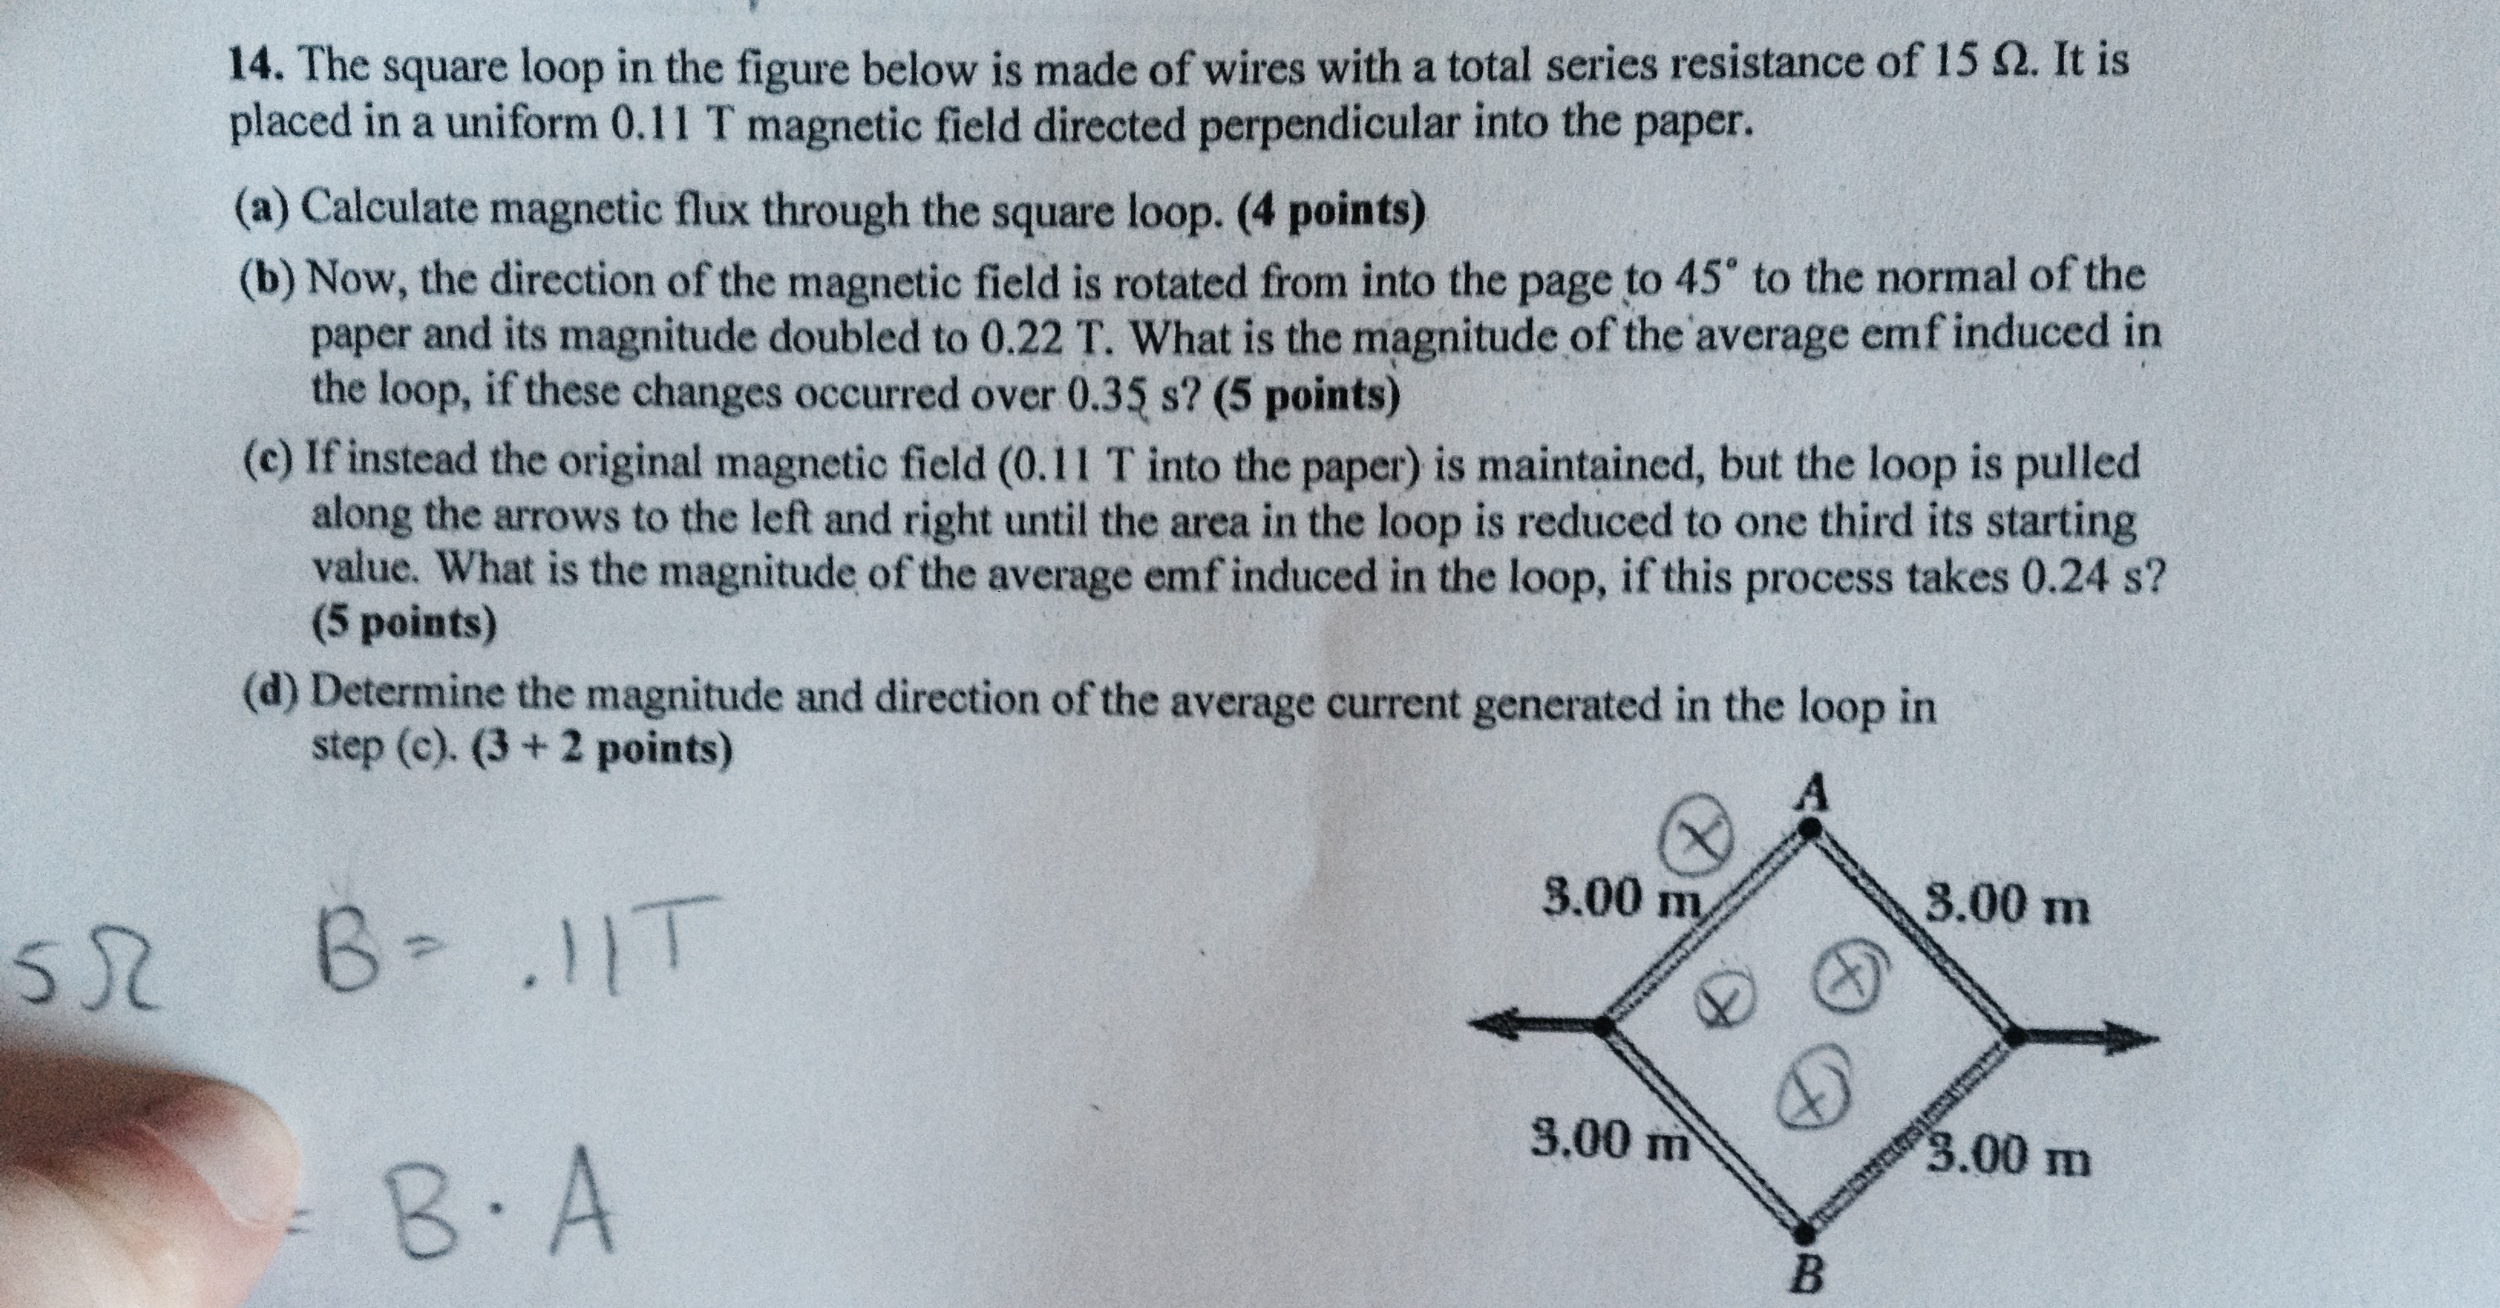 Solved: The Square Loop In The Figure Below Is Made Of Wir ...